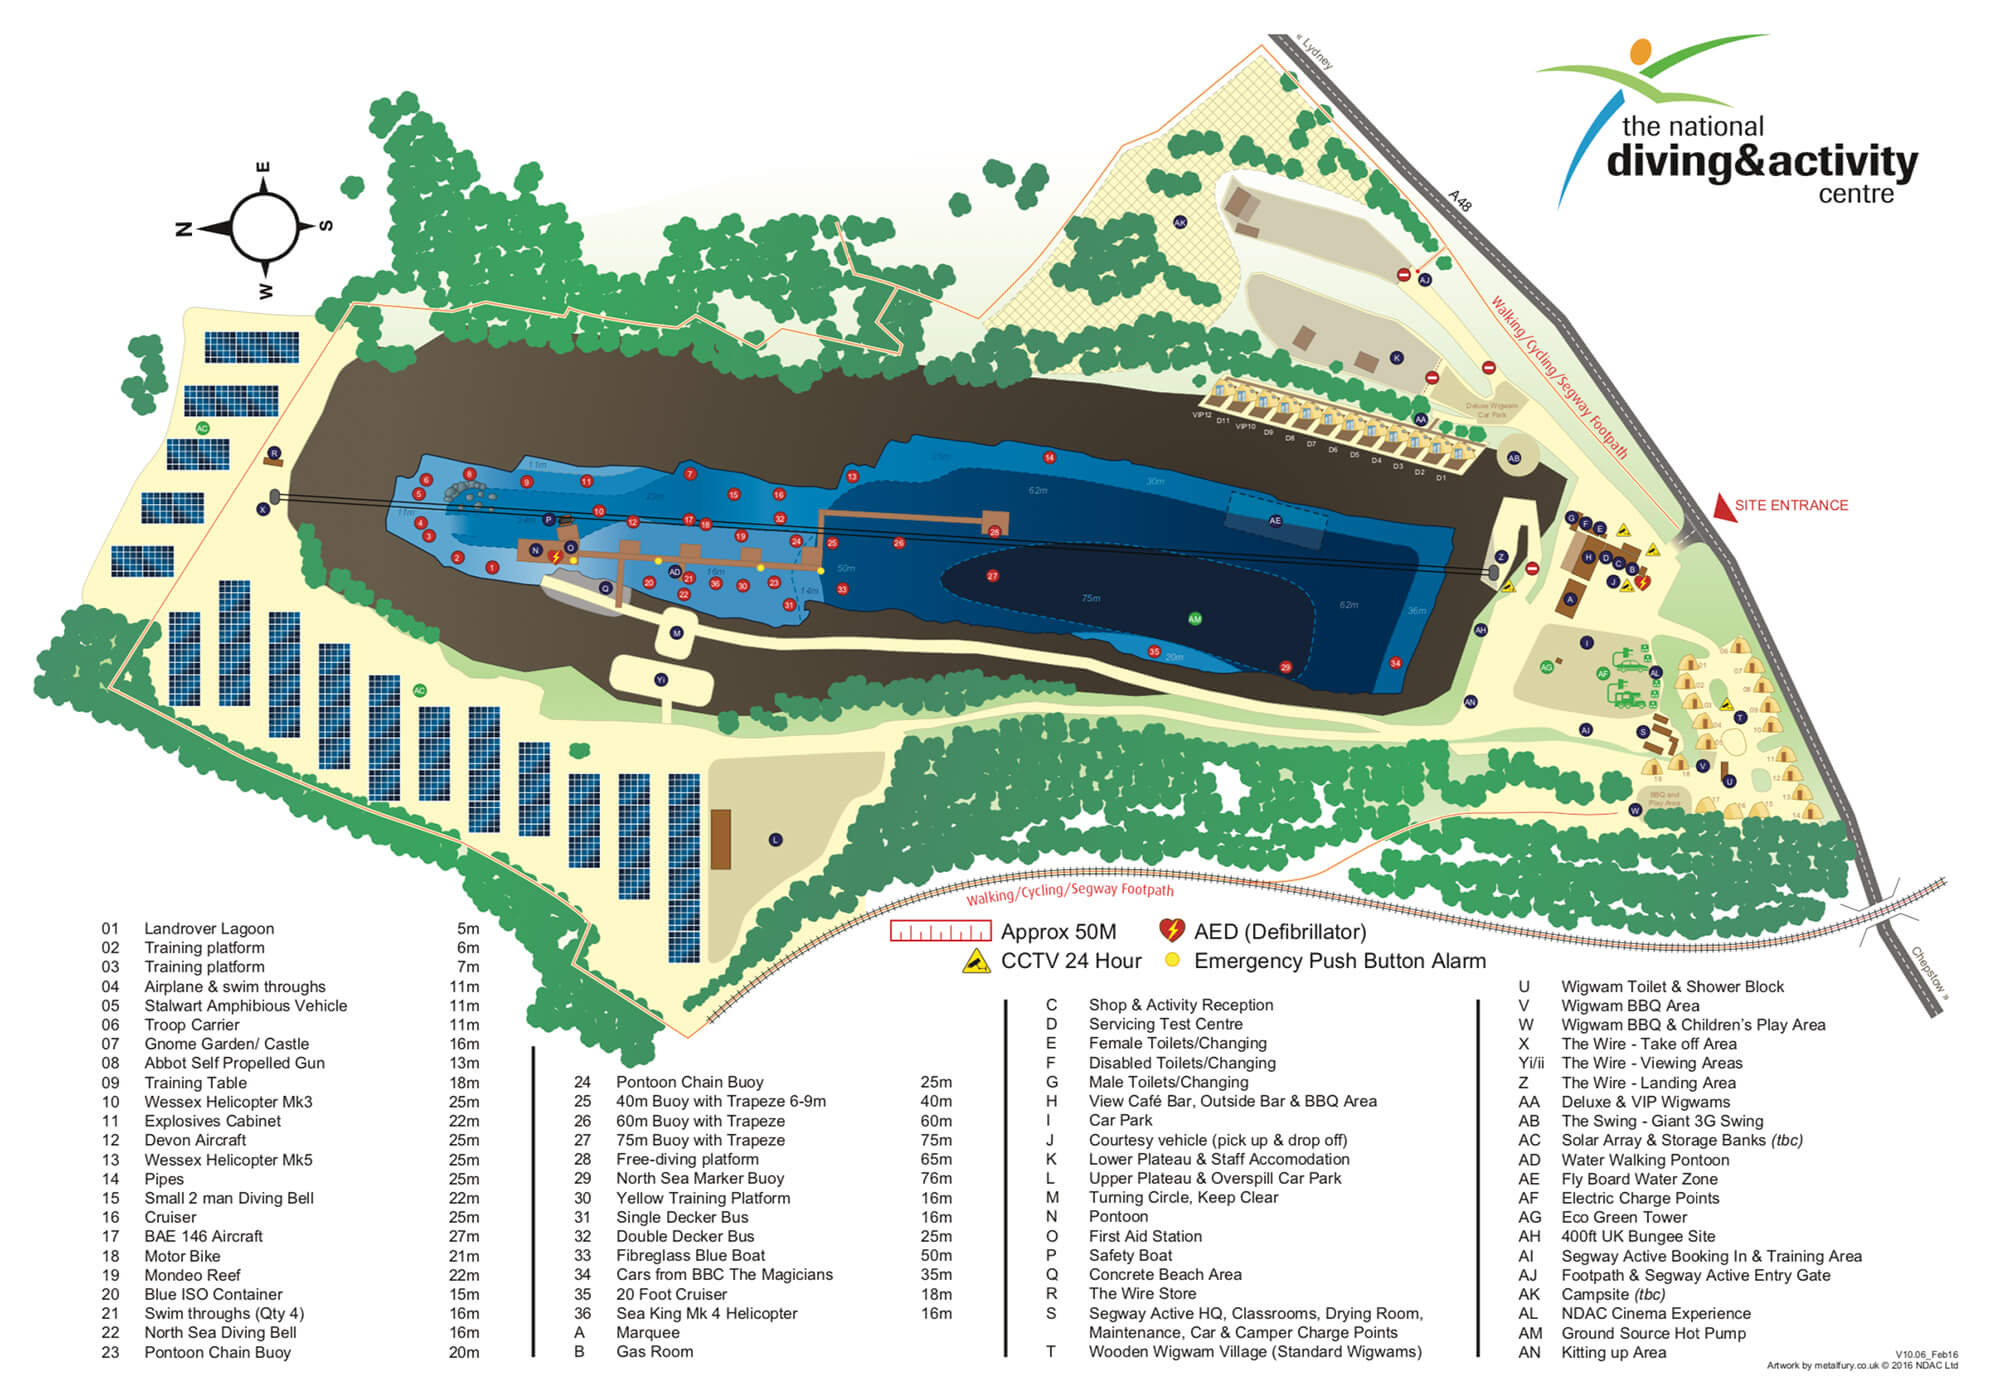 National Diving Academy In Chepstow Scuba Diving Site Map, Wales, UK